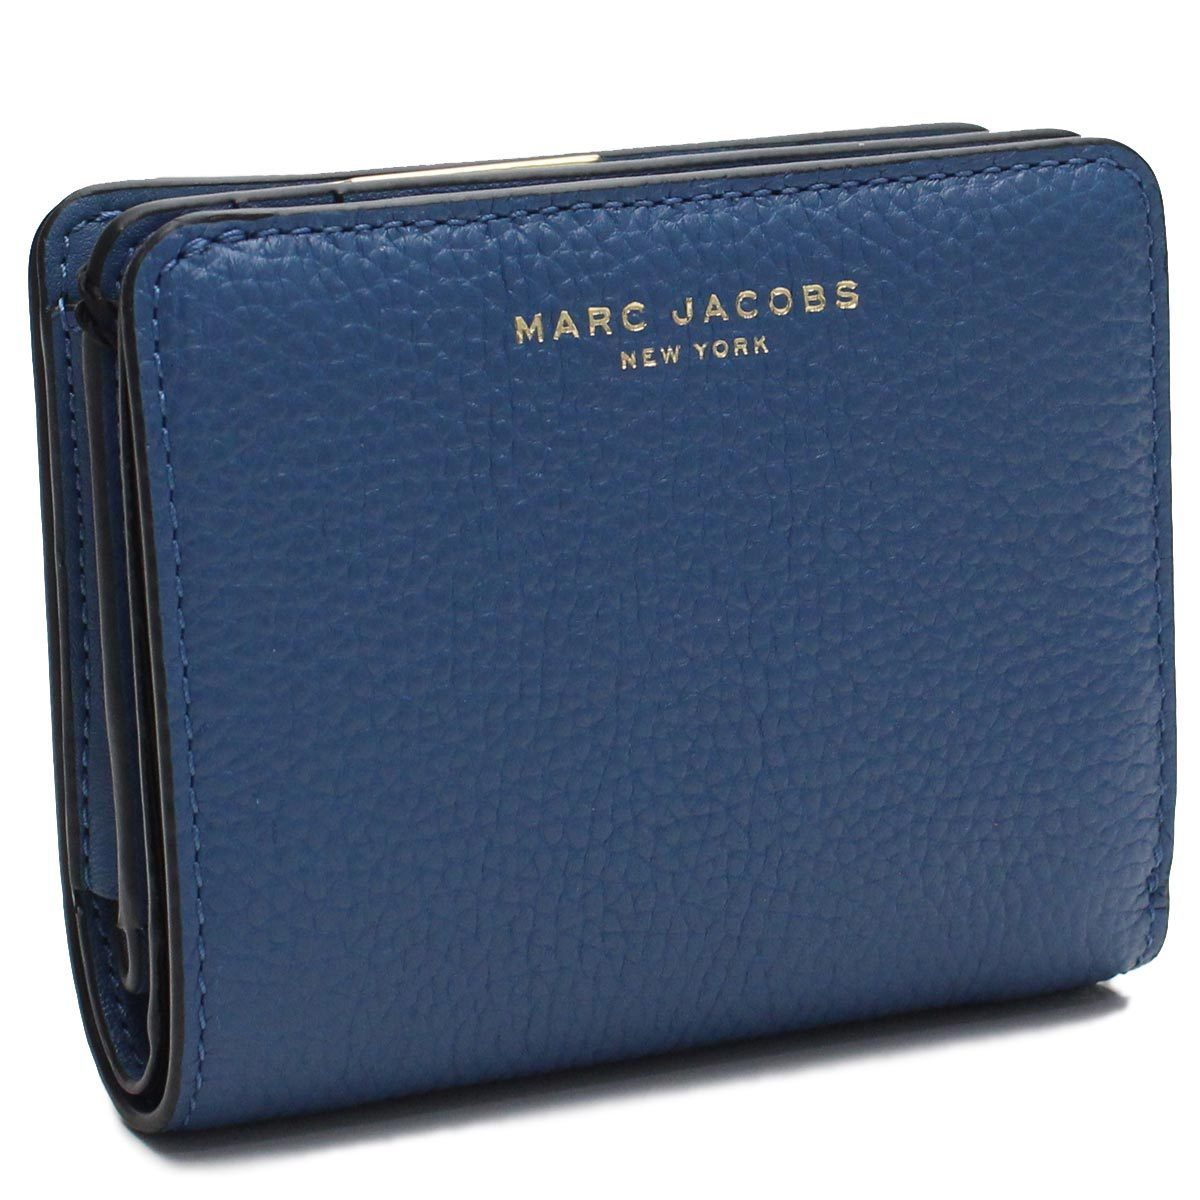 2018SS!MARC JACOBS ミニコンパクトウォレット M0011055 【即発